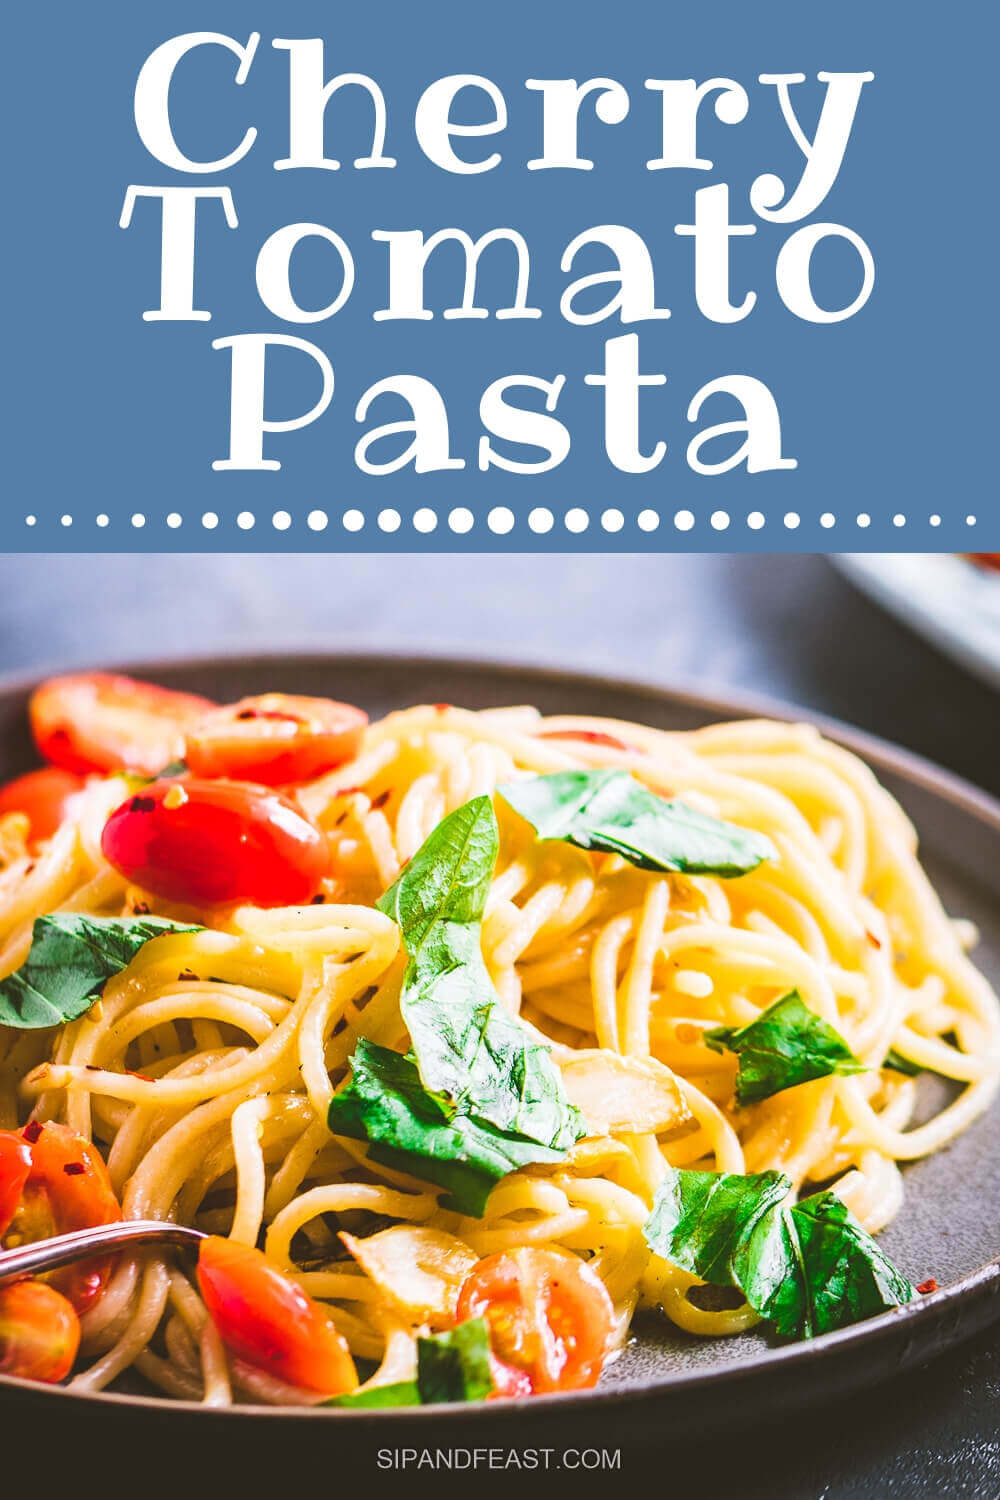 Pasta with cherry tomatoes Pinterest image.